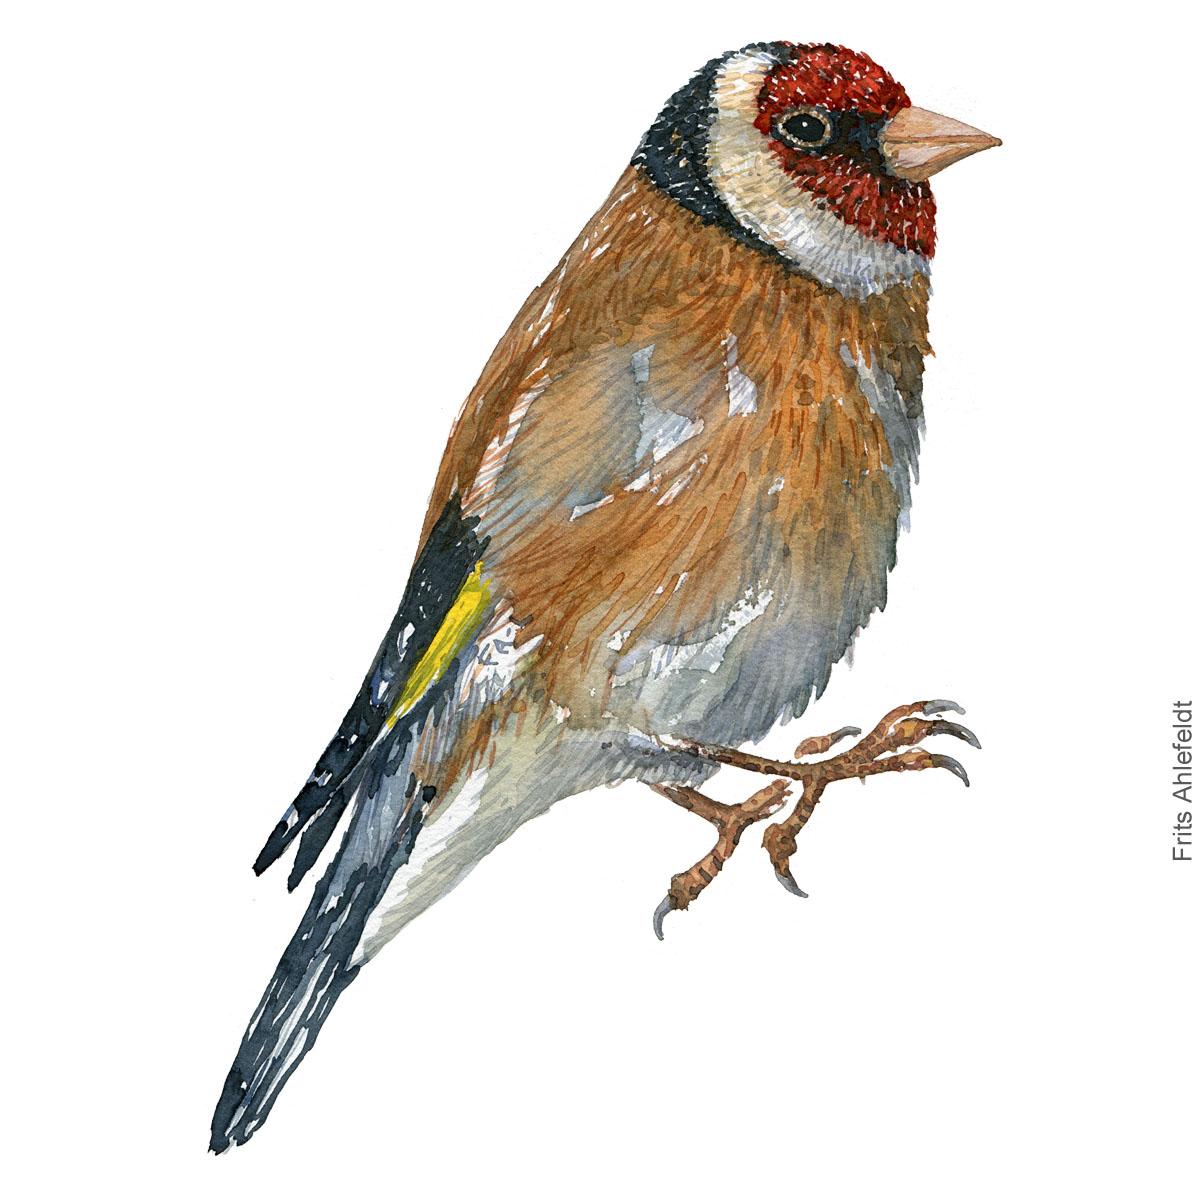 Stillits - European goldfinch - Bird painting in watercolor by Frits Ahlefeldt - Fugle akvarel